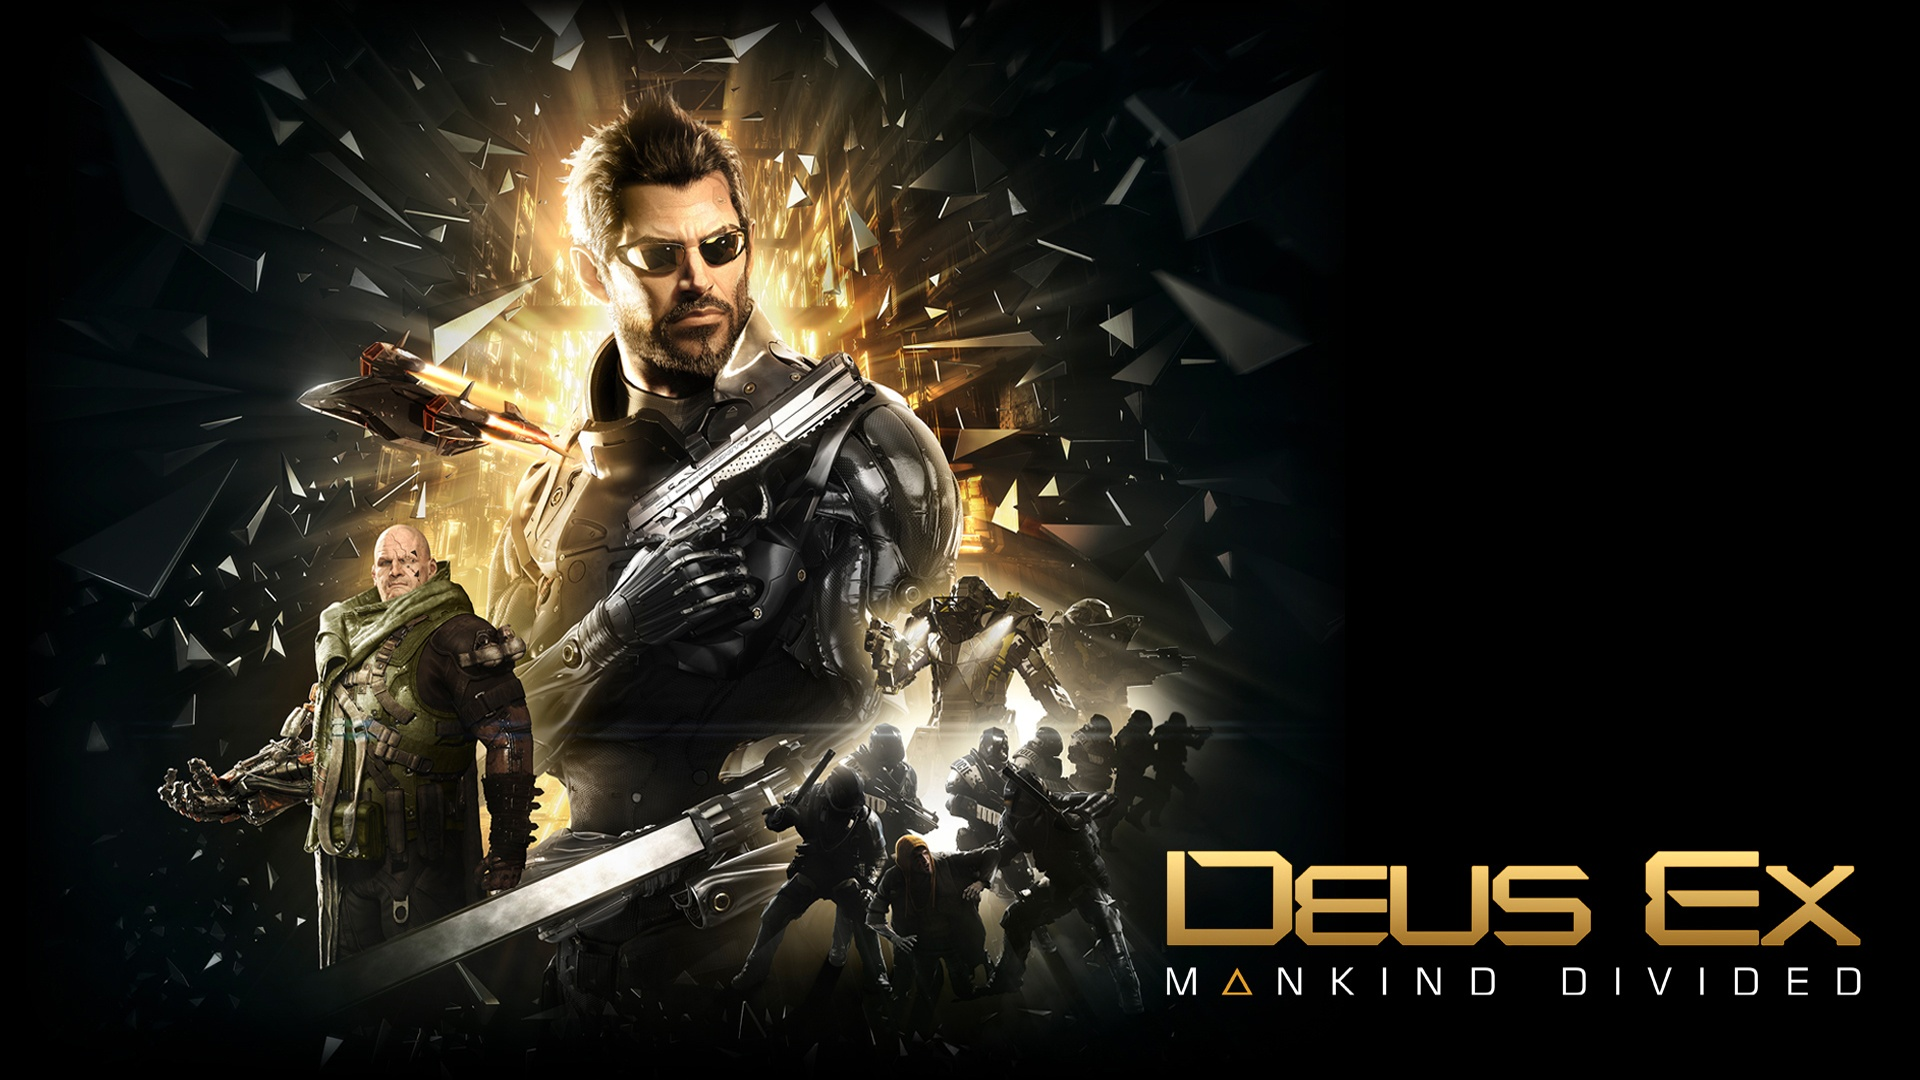 deus_ex_mankind_divided-wallpaper-background-1920x1080